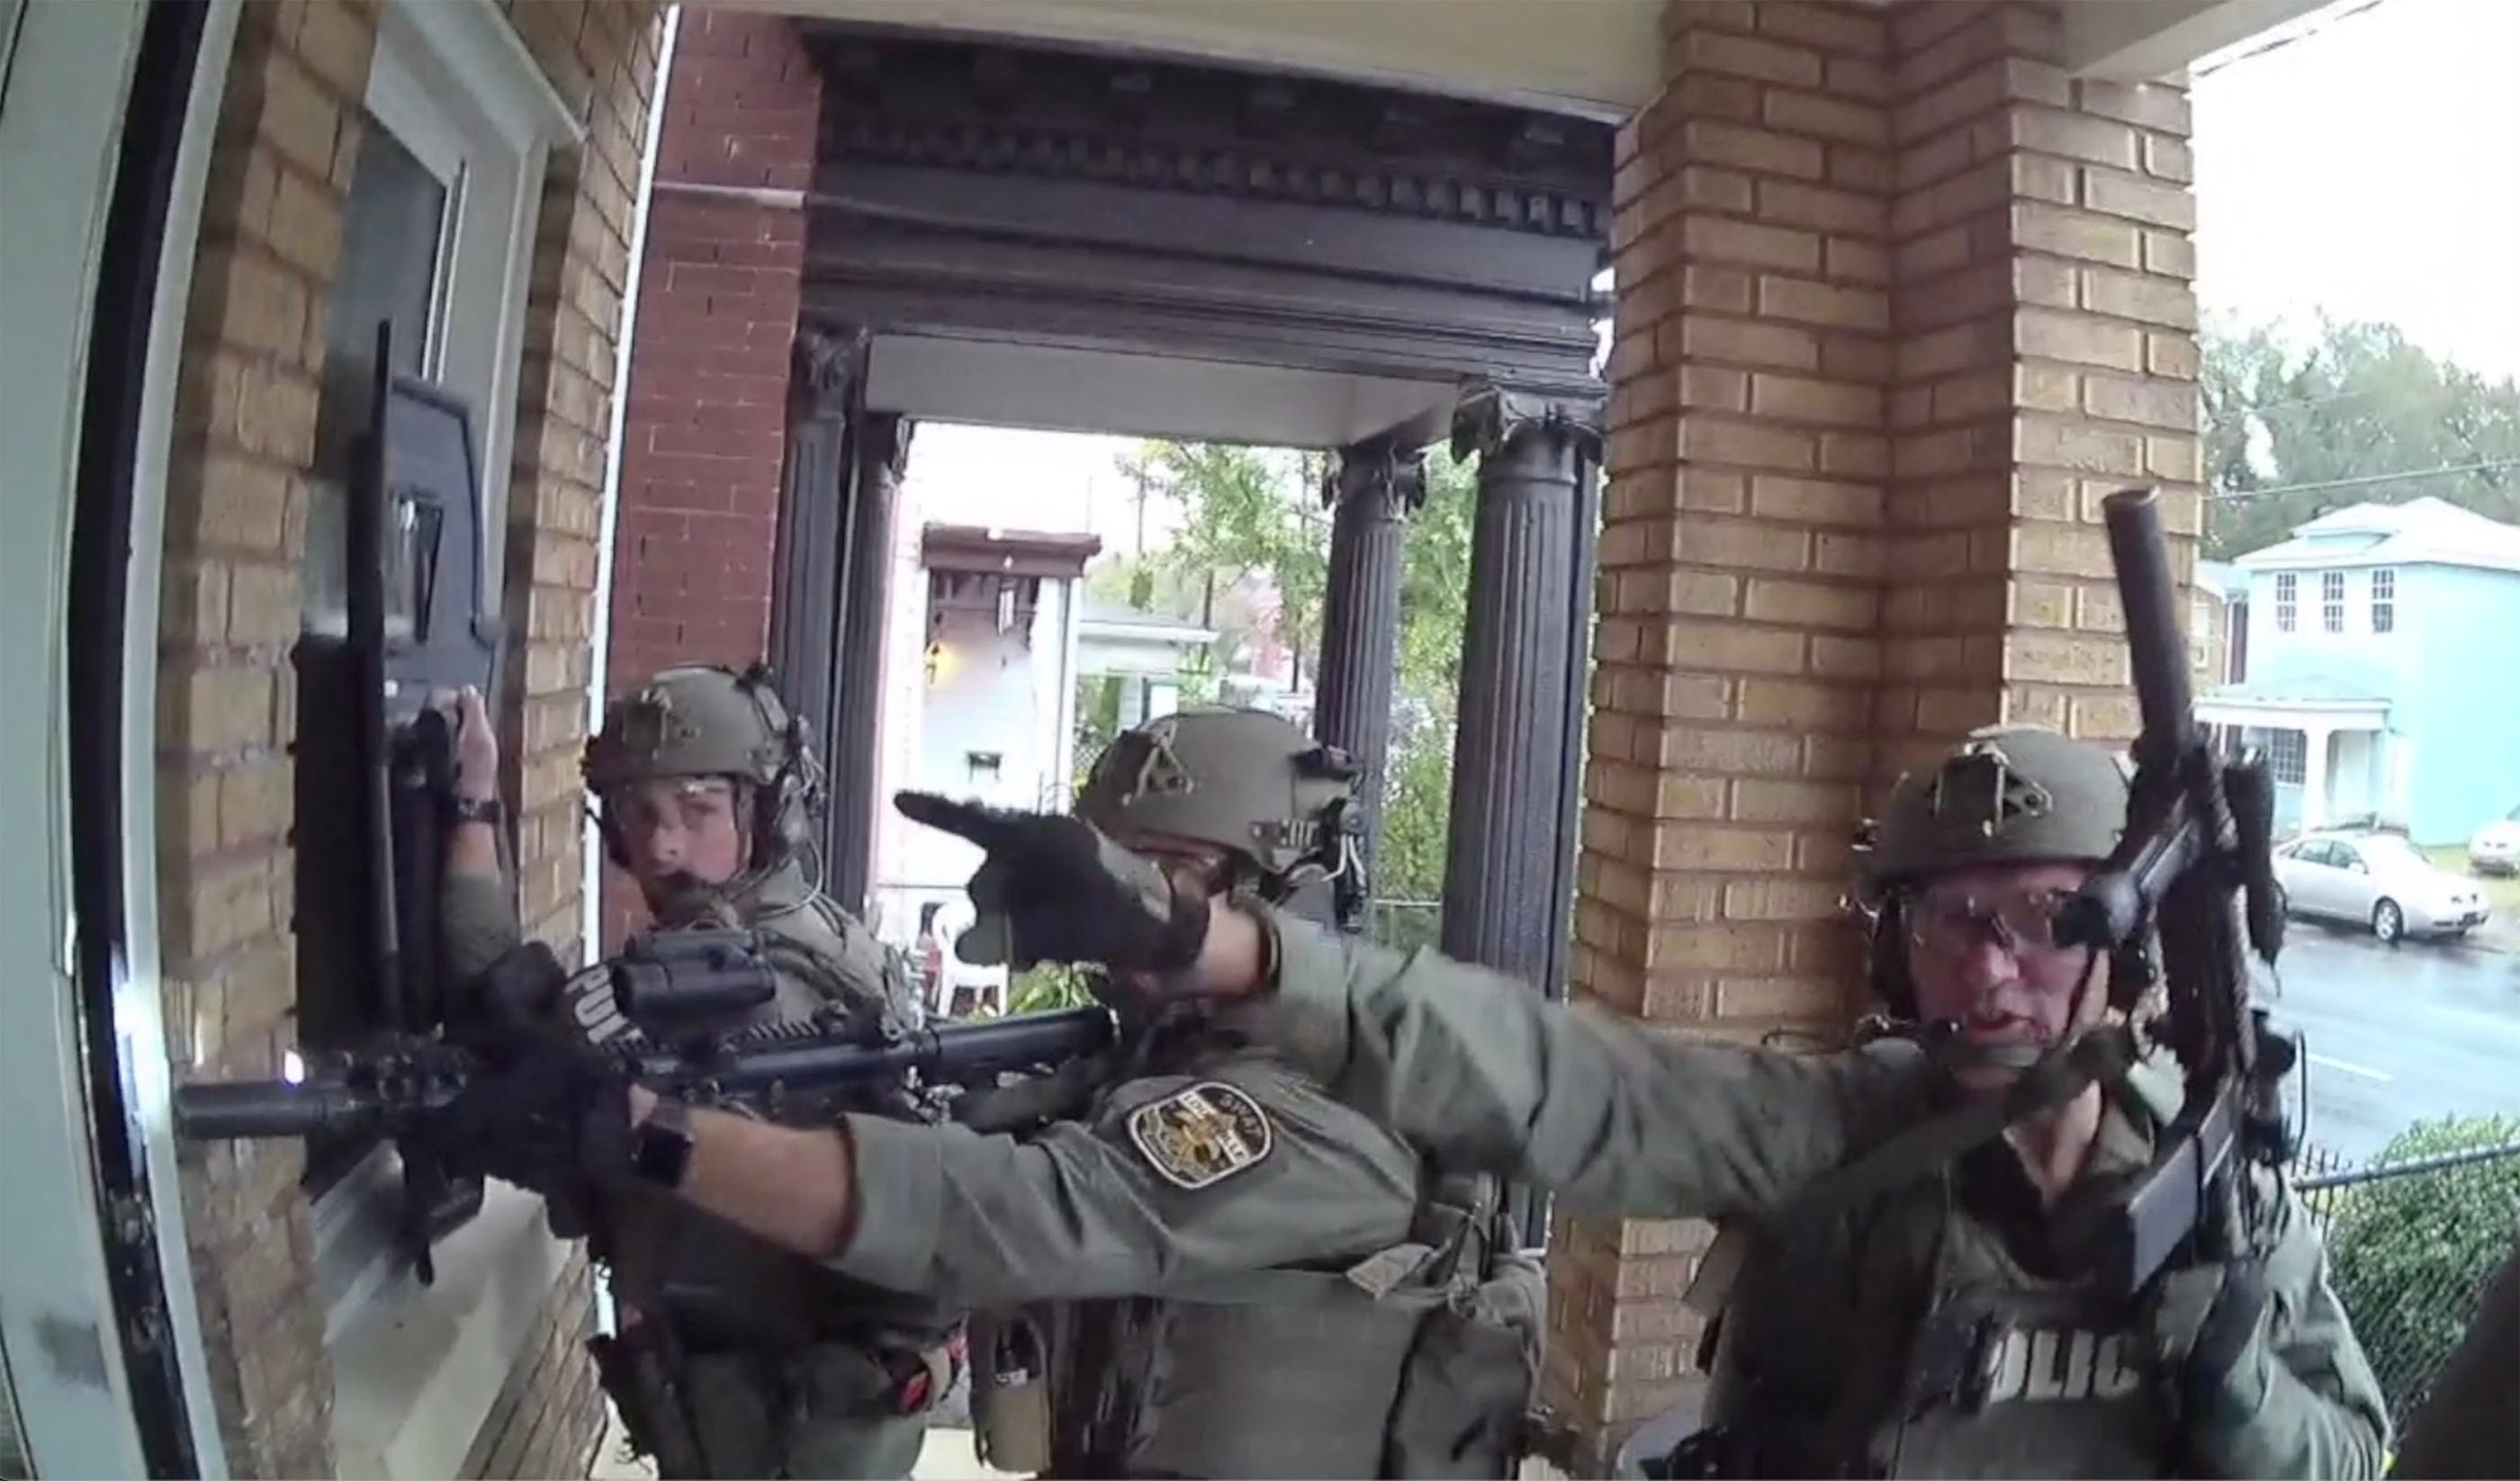 Louisville police body cam footage: SWAT team enters home